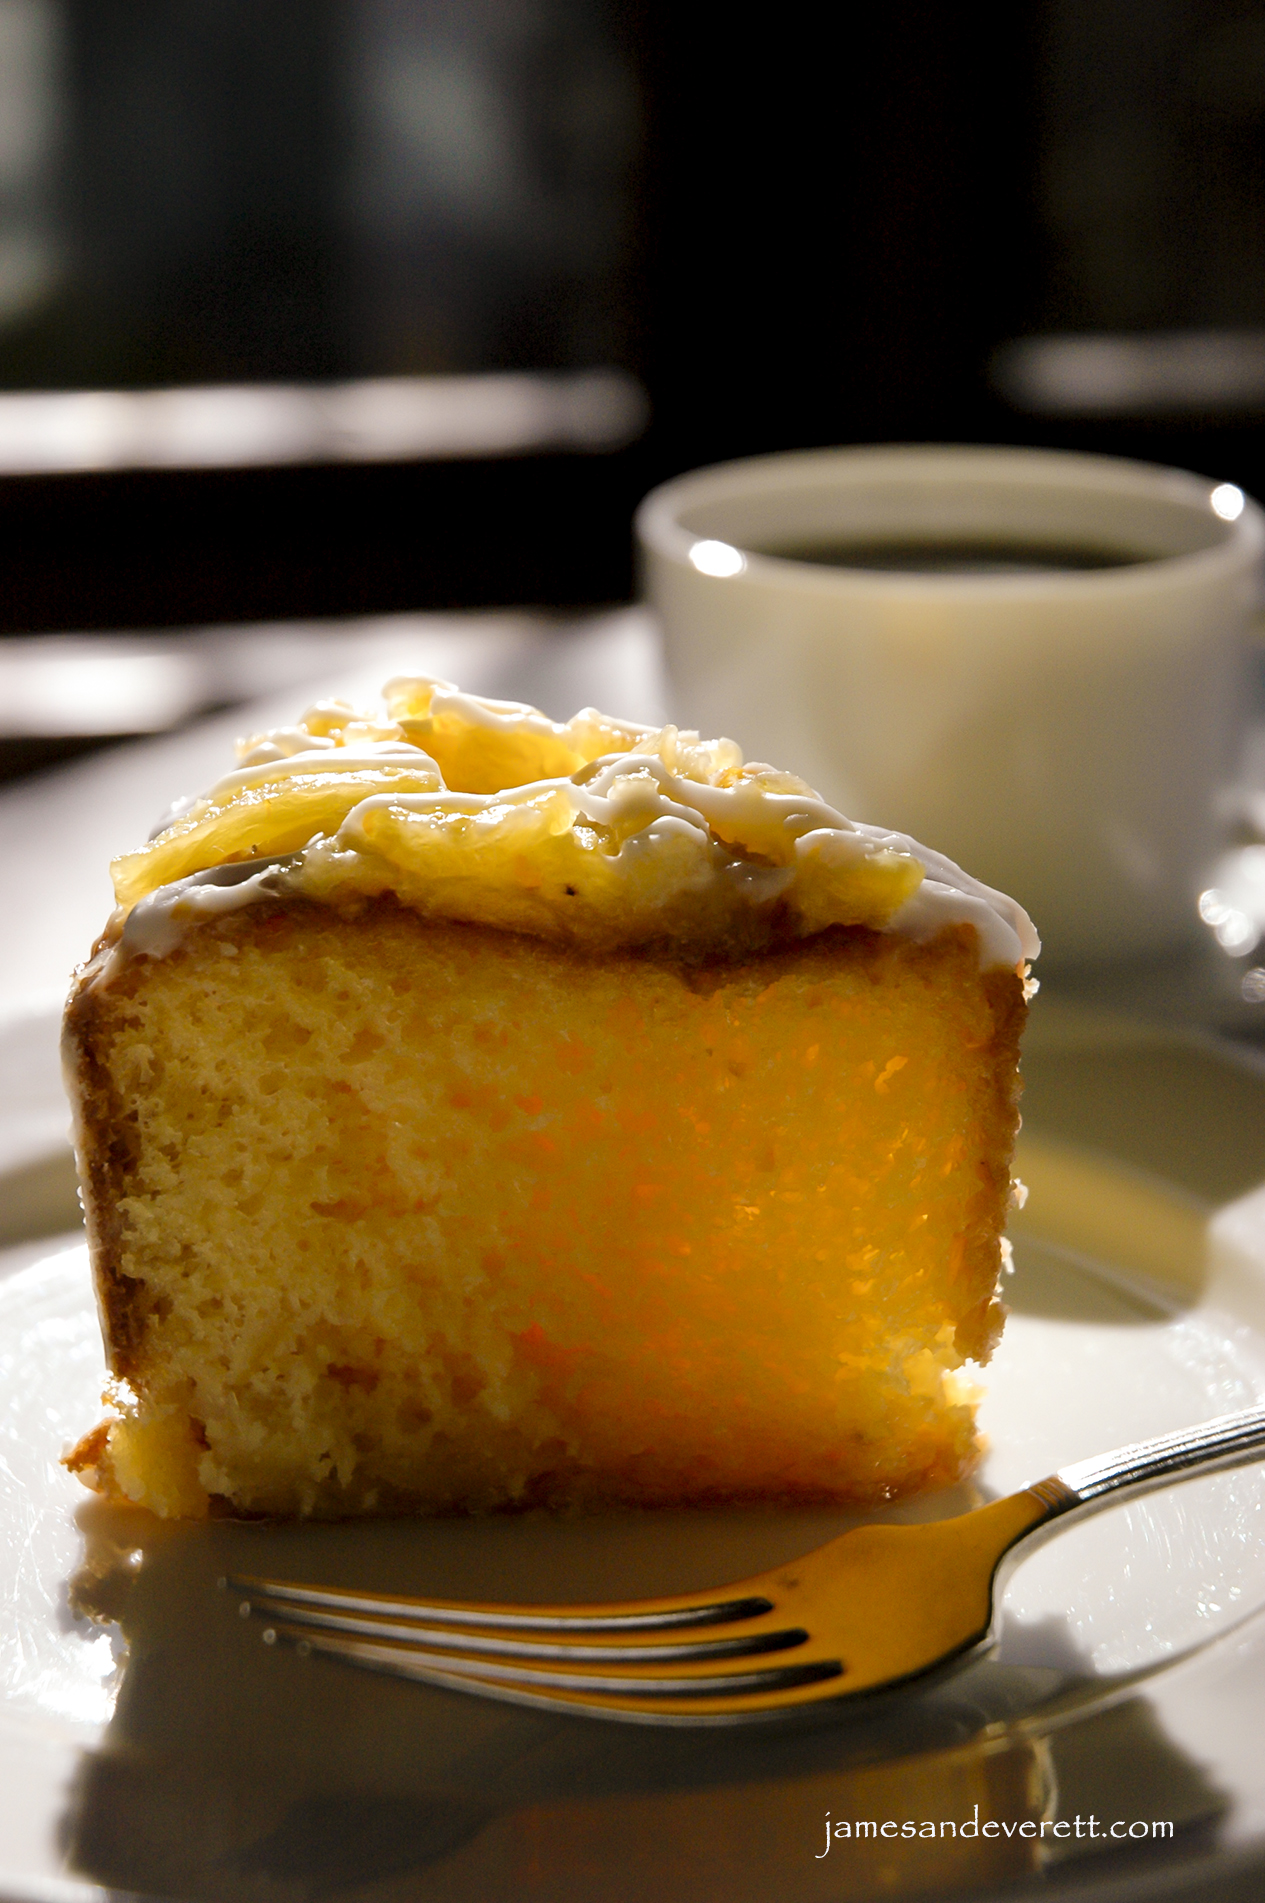 Glazed Pineapple Cake with Almond Rum Icing